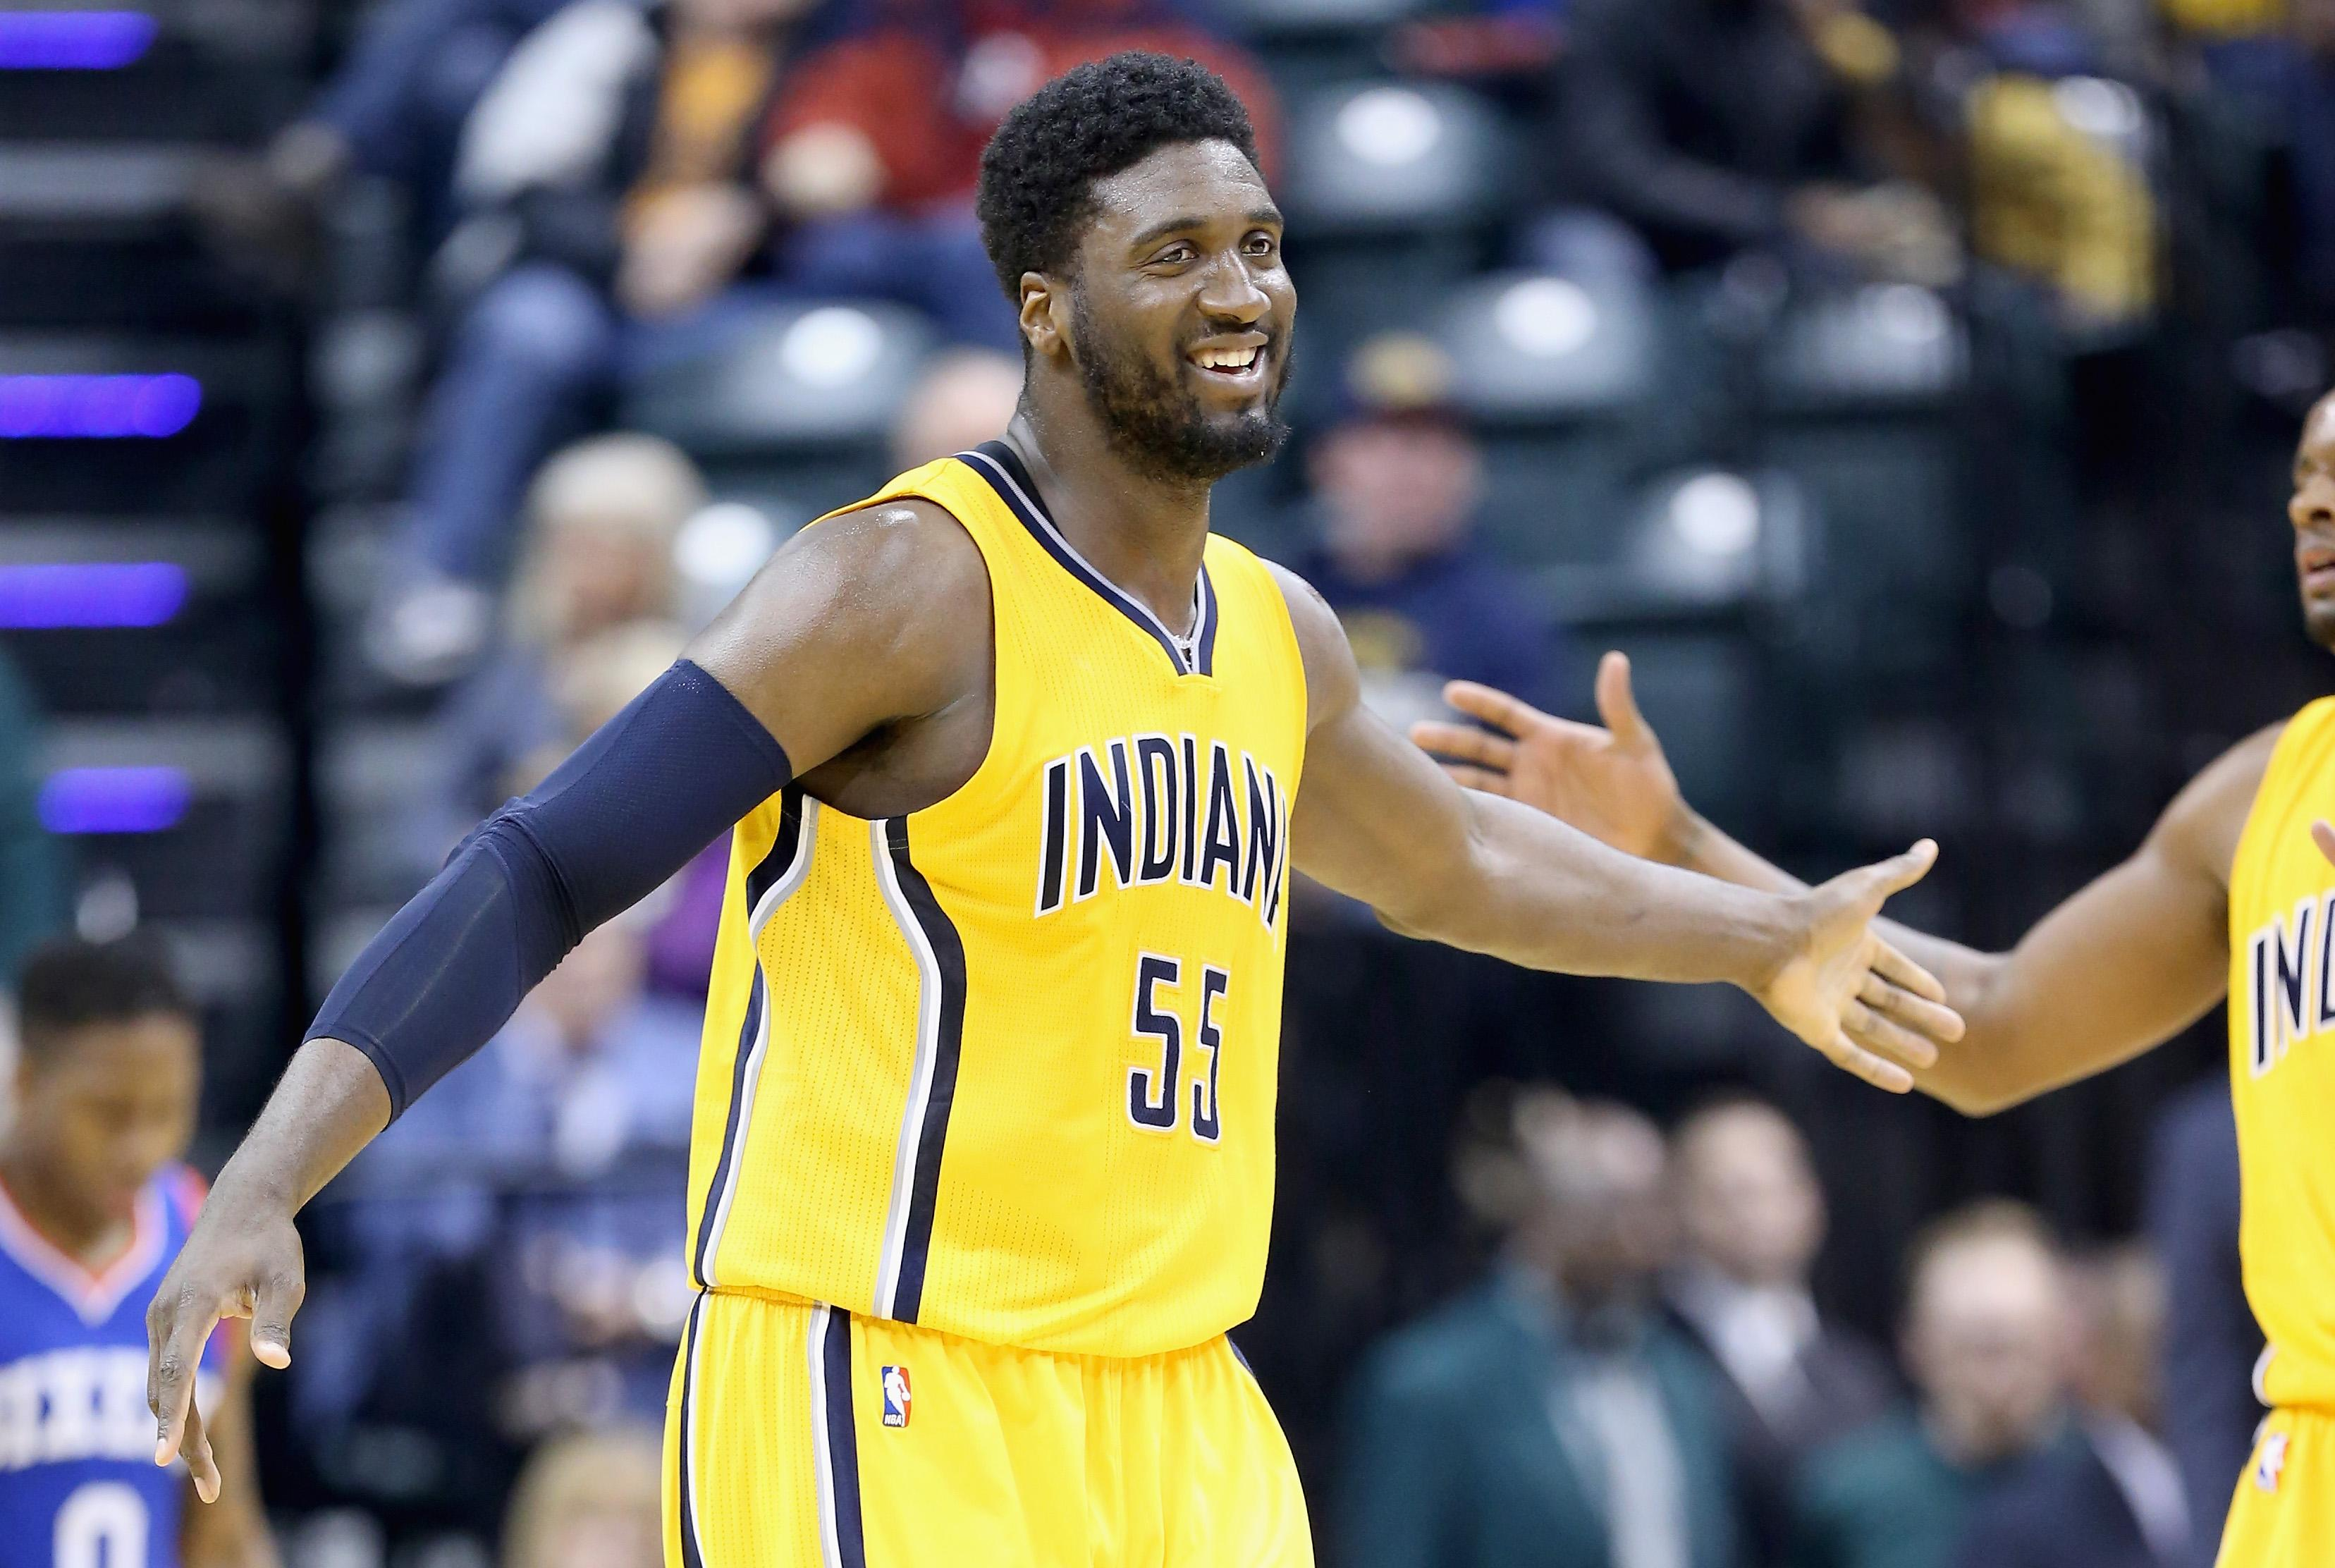 Sources: Lakers finalizing terms on trade to acquire Pacers center Roy Hibbert